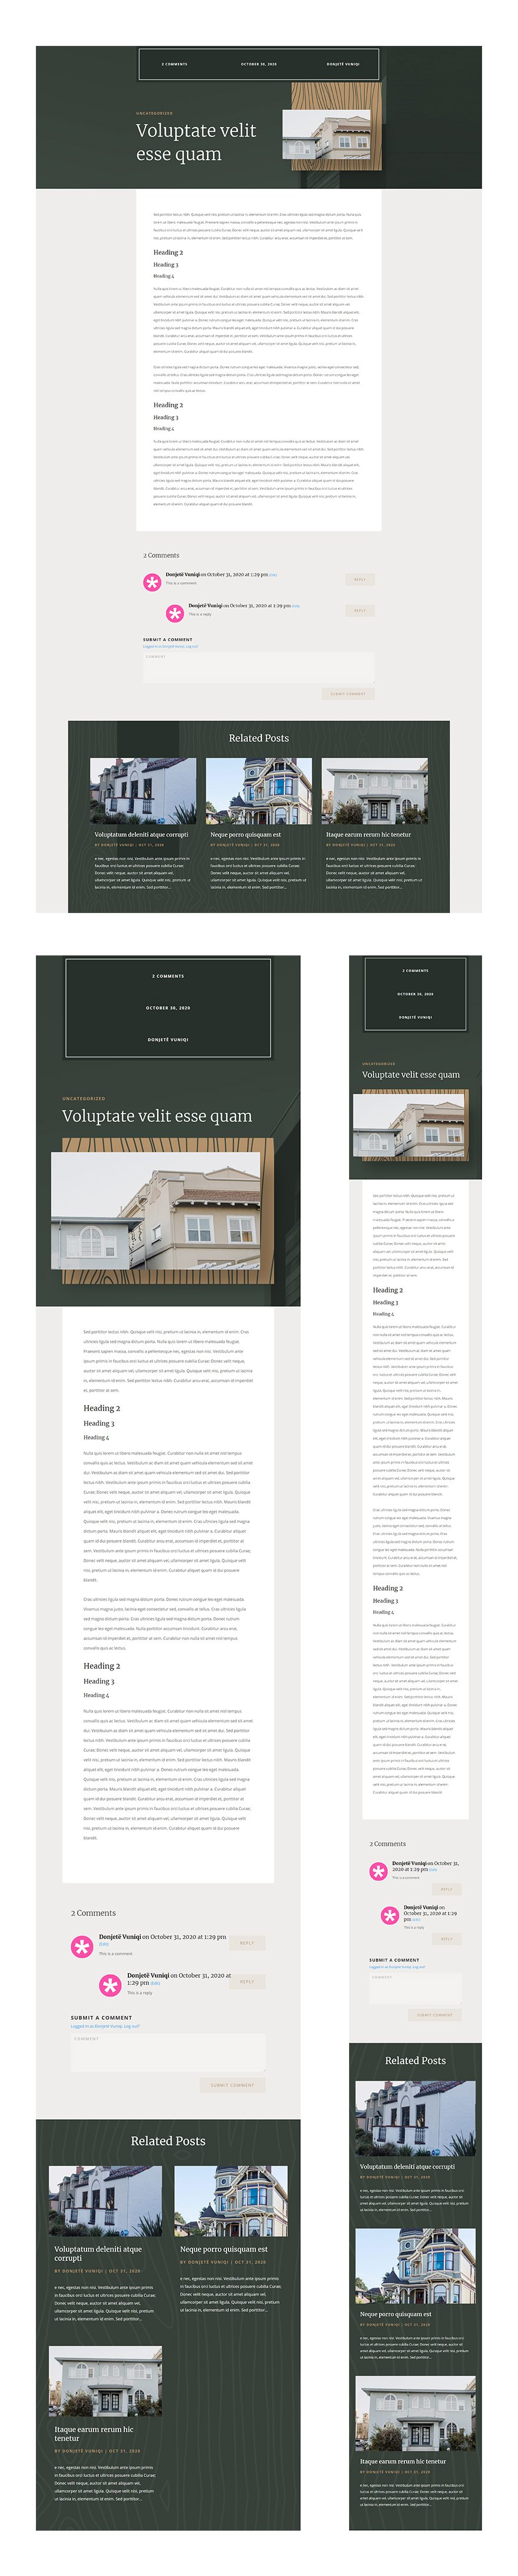 download-a-free-blog-post-template-for-divis-realtor-layout-pack Download a FREE Blog Post Template for Divi's Realtor Layout Pack